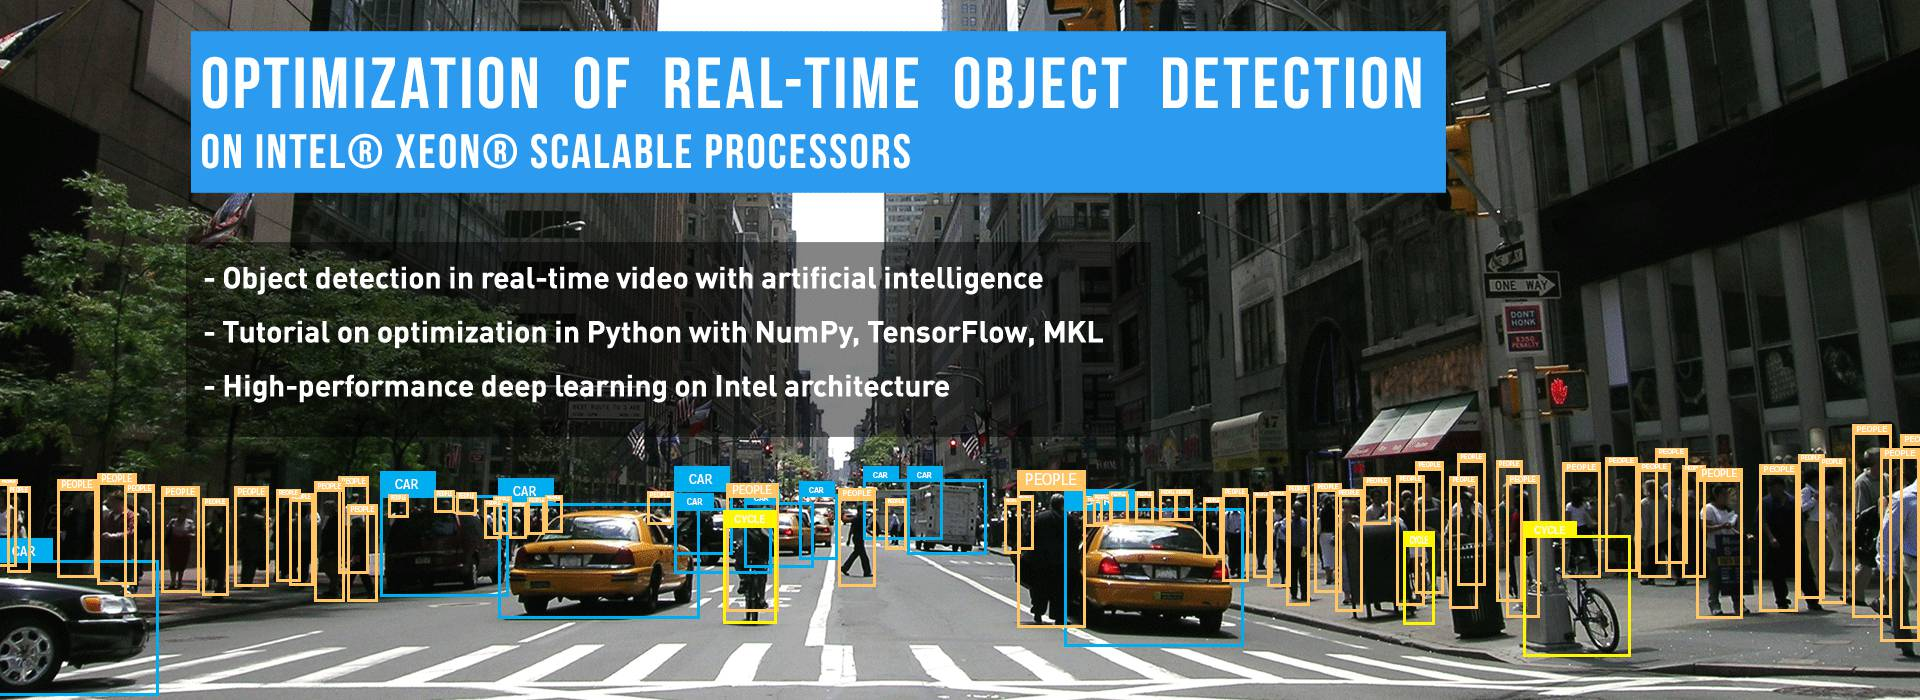 Optimization of Real-Time Object Detection on Intel® Xeon